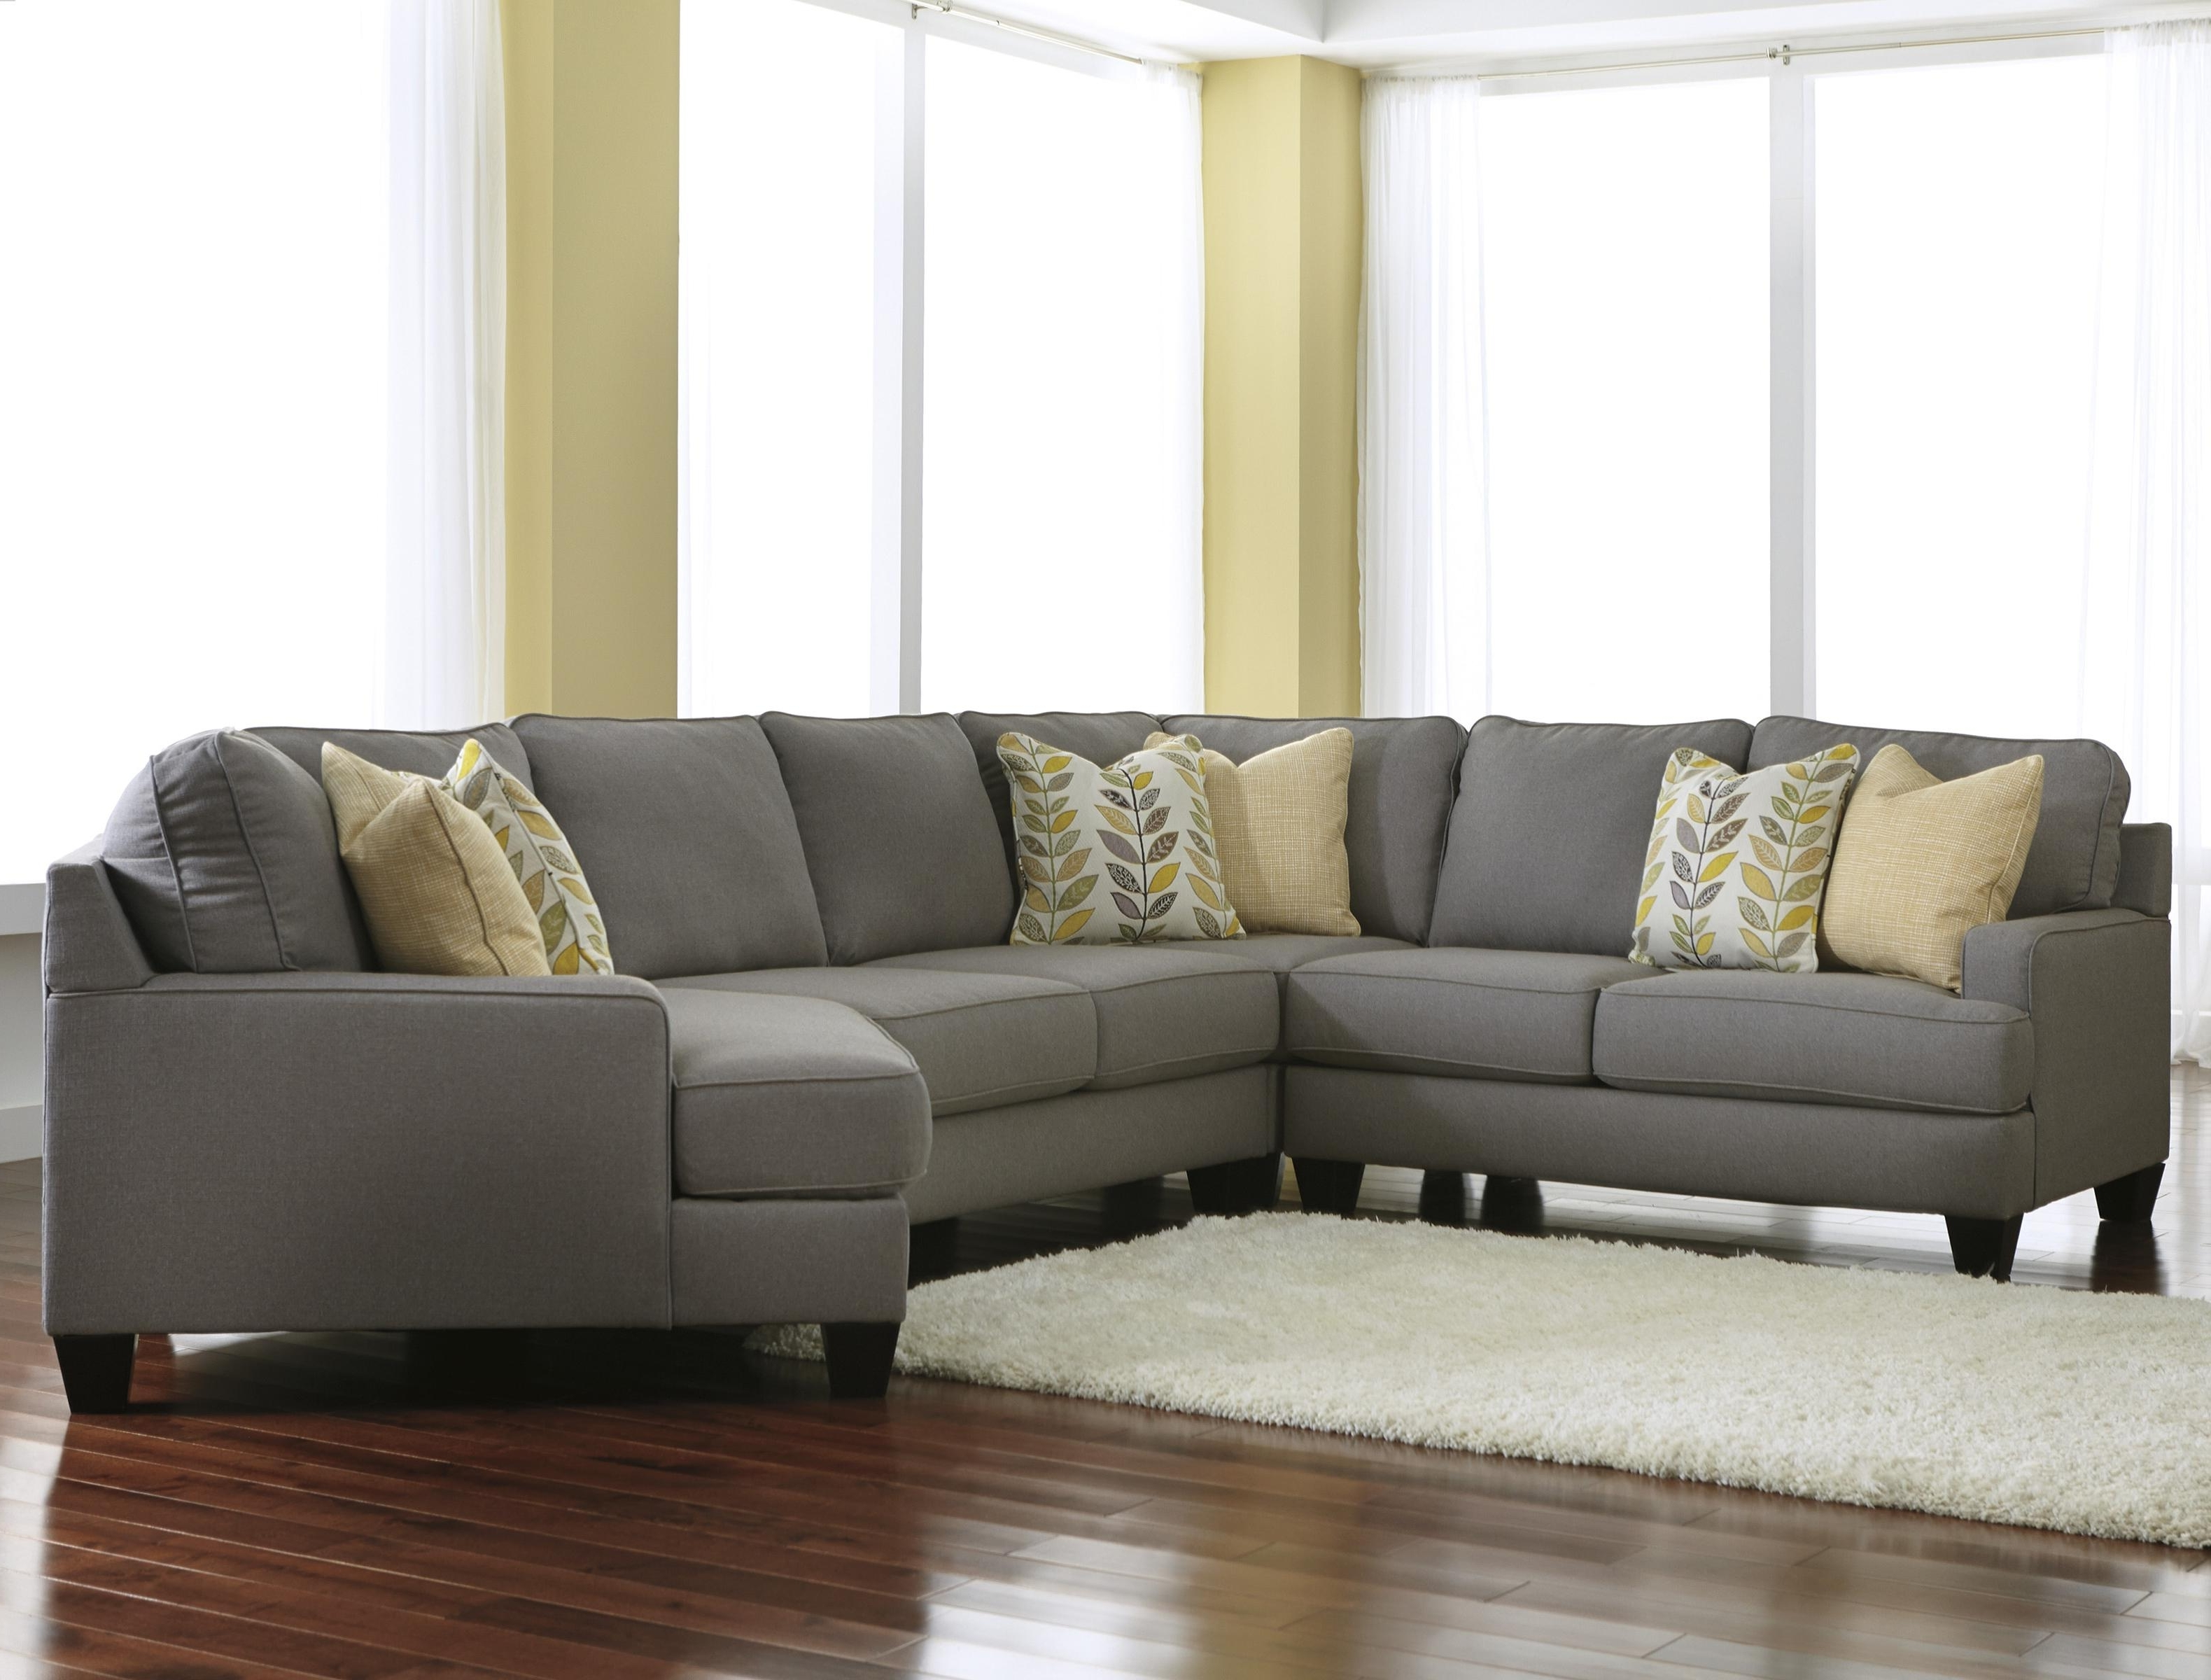 Well Known Modern 4 Piece Sectional Sofa With Right Cuddler & Reversible Seat Regarding Gardiners Sectional Sofas (View 16 of 20)